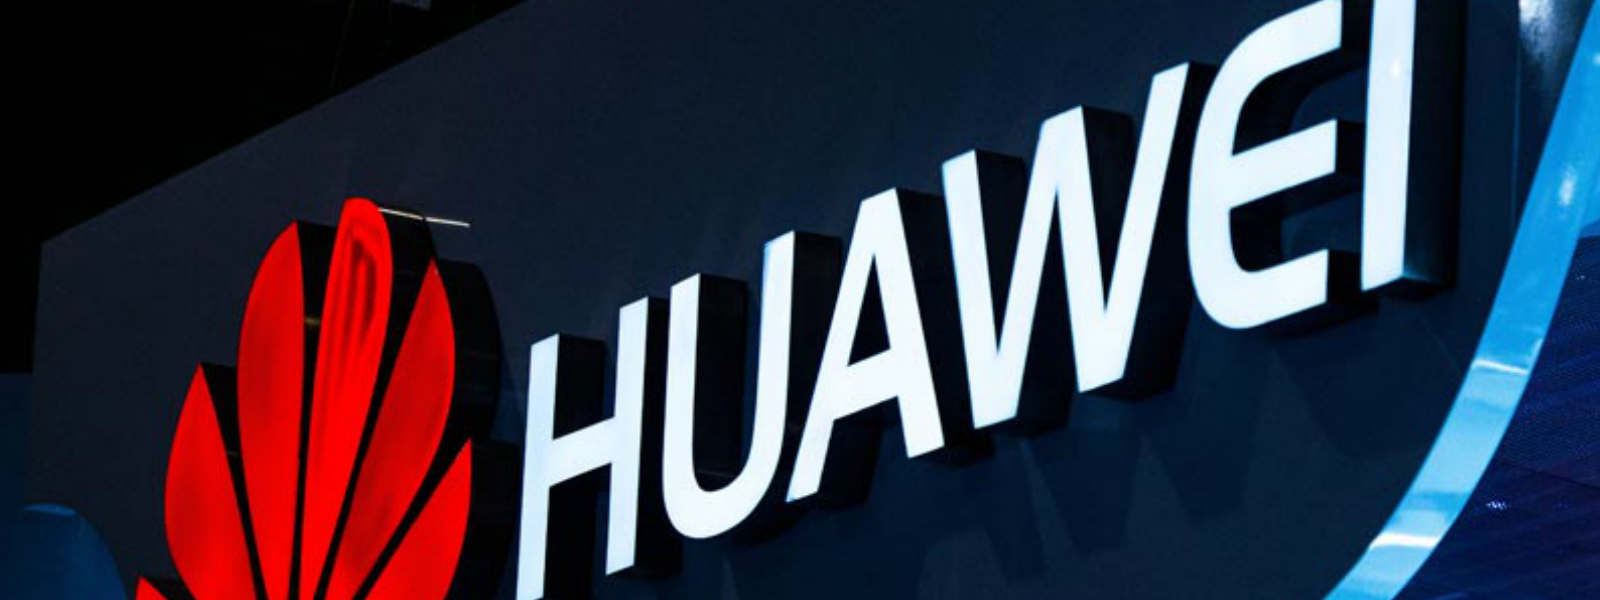 Huawei founder says company's 5G tech won't affected by U.S. blacklisting